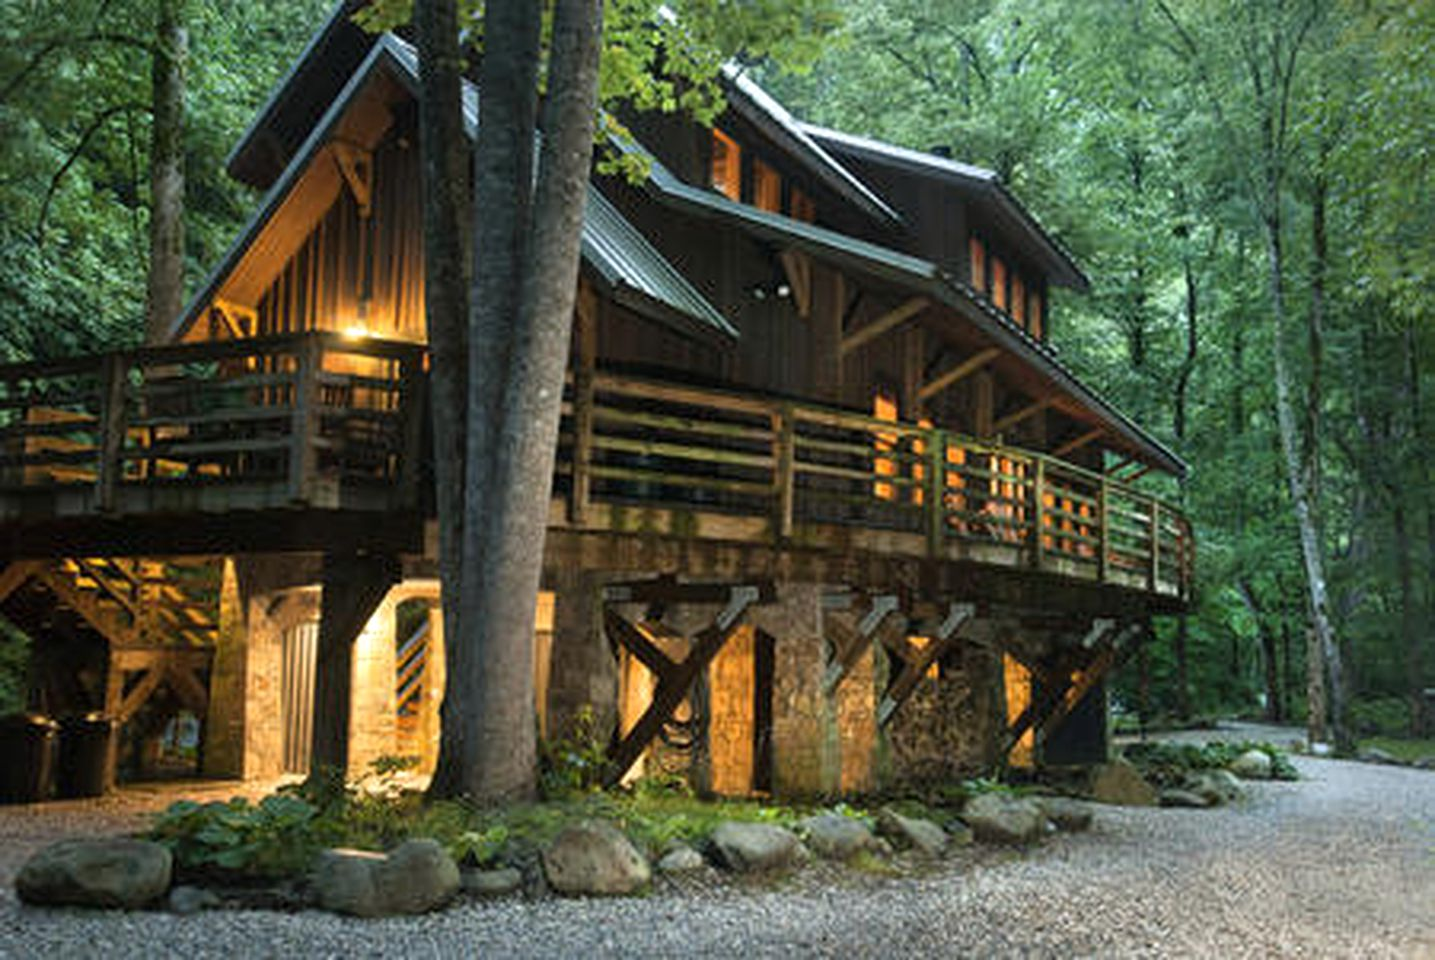 Lights on at dusk in North Carolina River cabin rentals | Luxury rivercabin